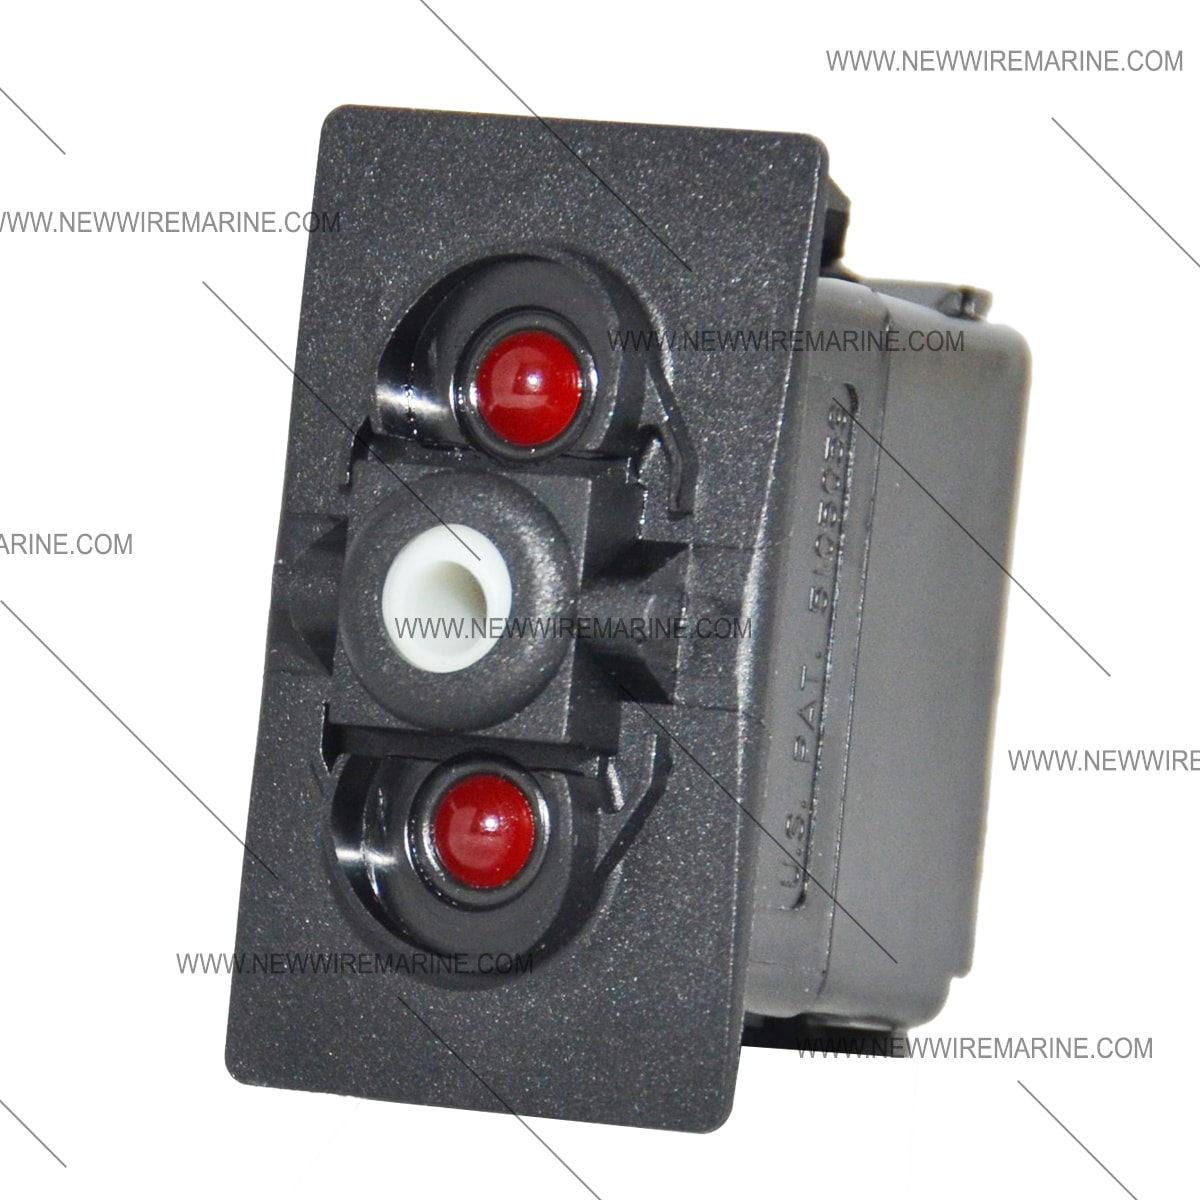 boat switch wiring diagram for all parts mast on sailboat on-off-on backlit rocker | red led new wire marine